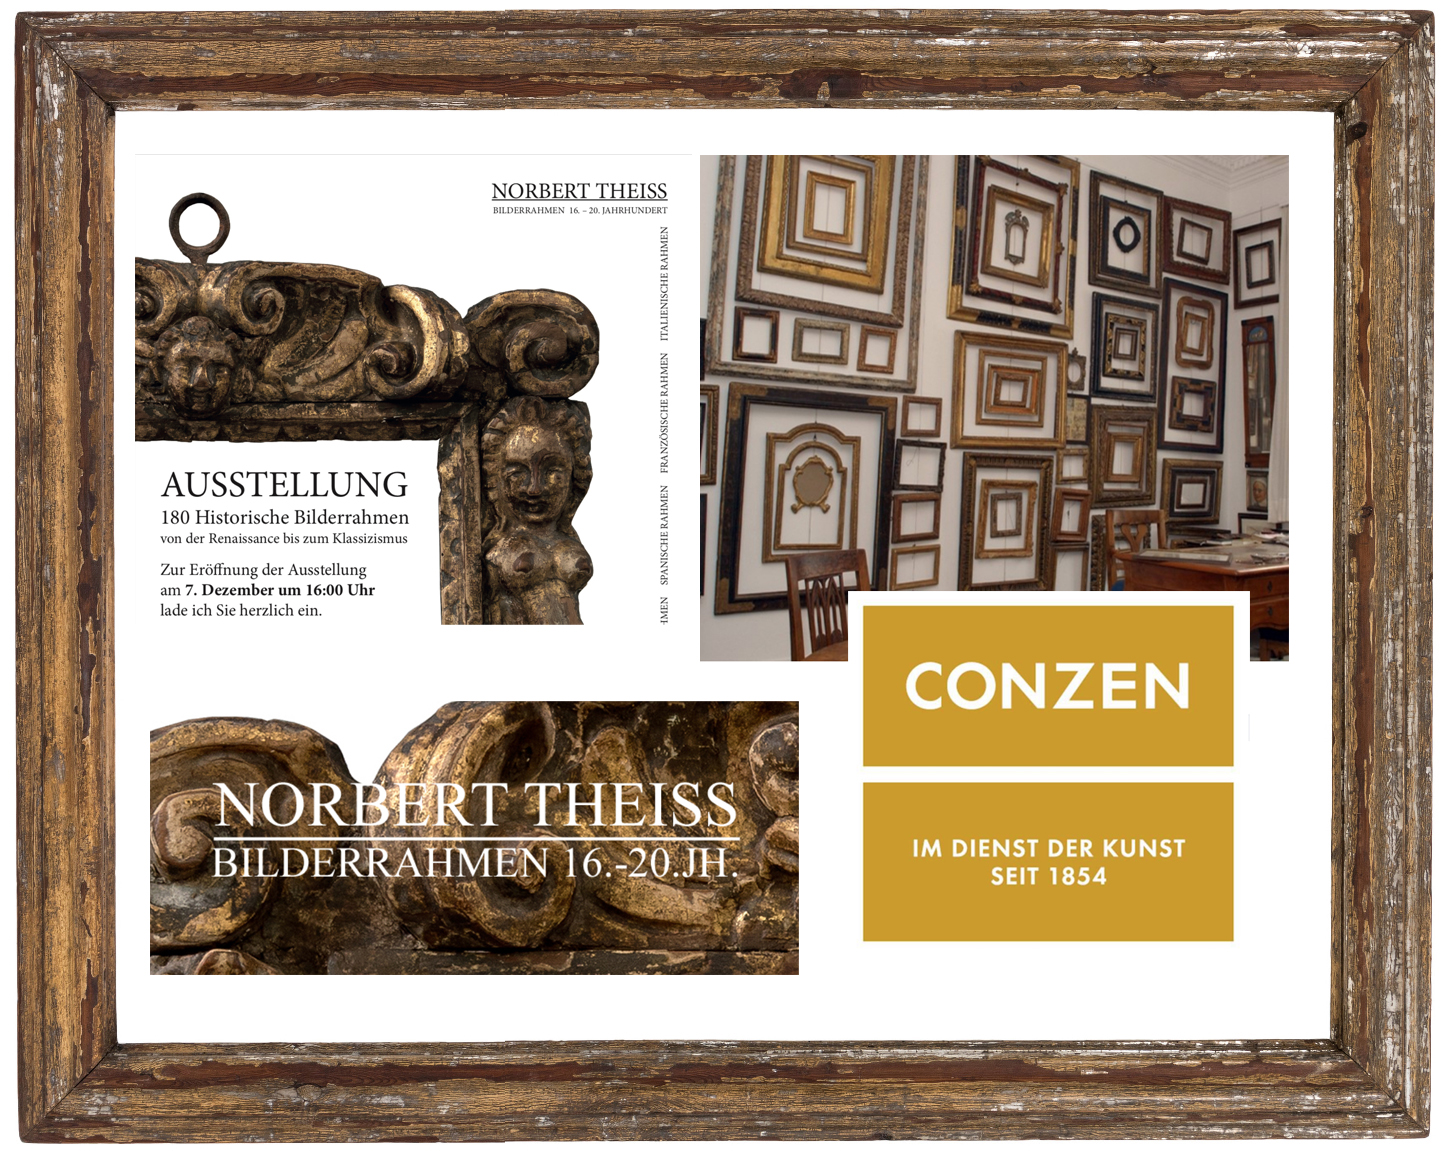 Norbert Theisss Frame Exhibition And Conzen 15th Antique Frame